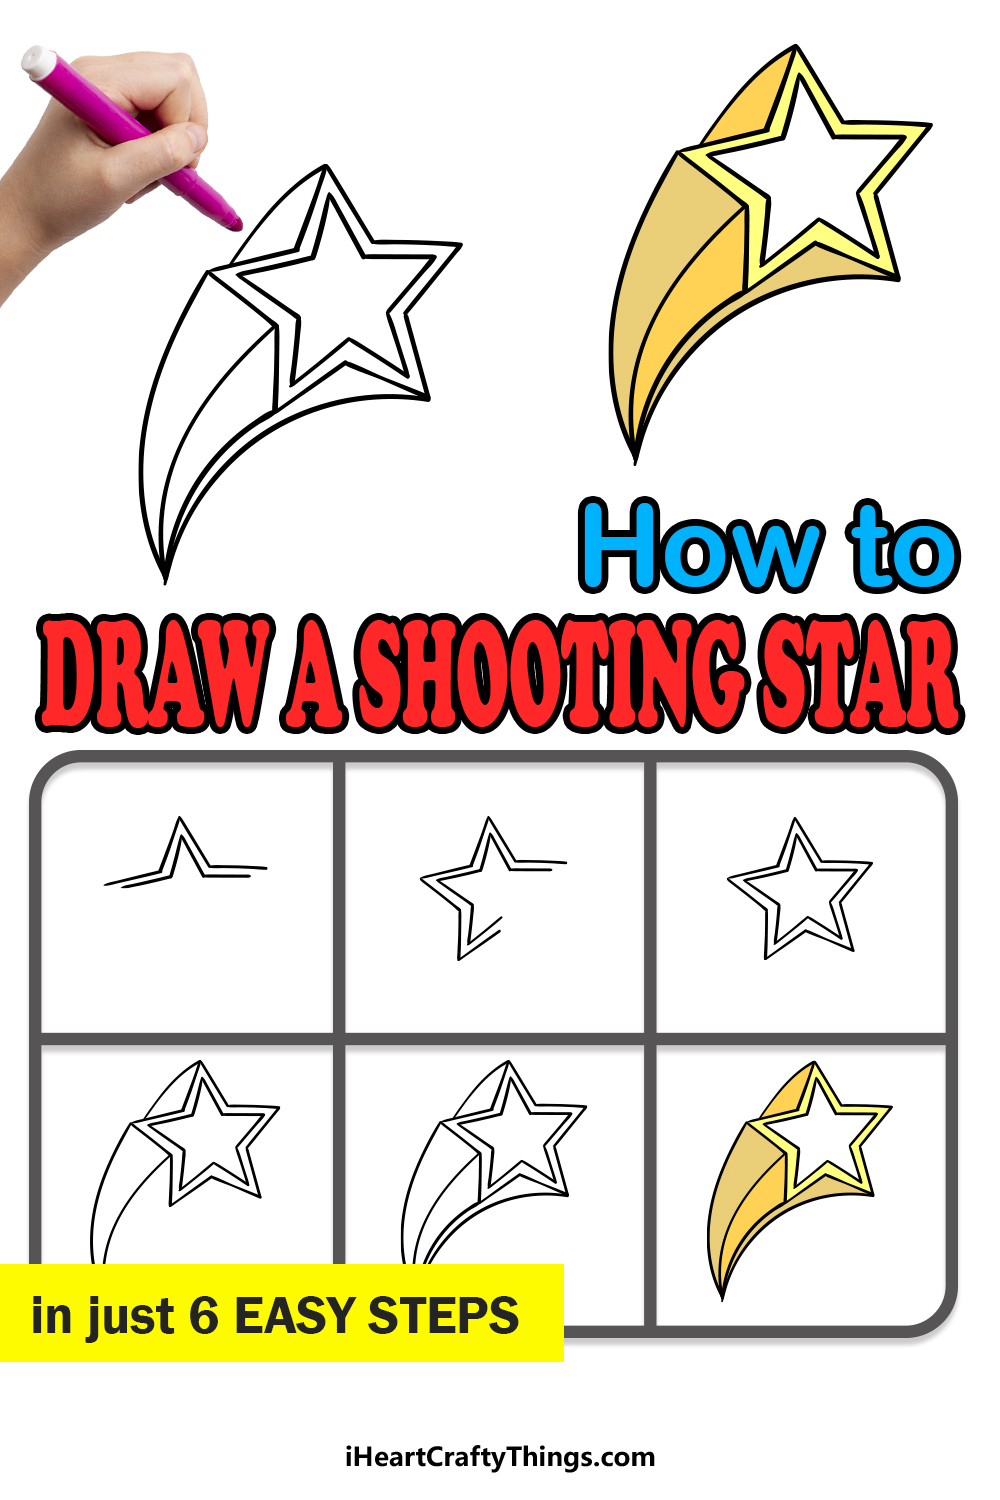 how to draw a Shooting Star in 6 easy steps